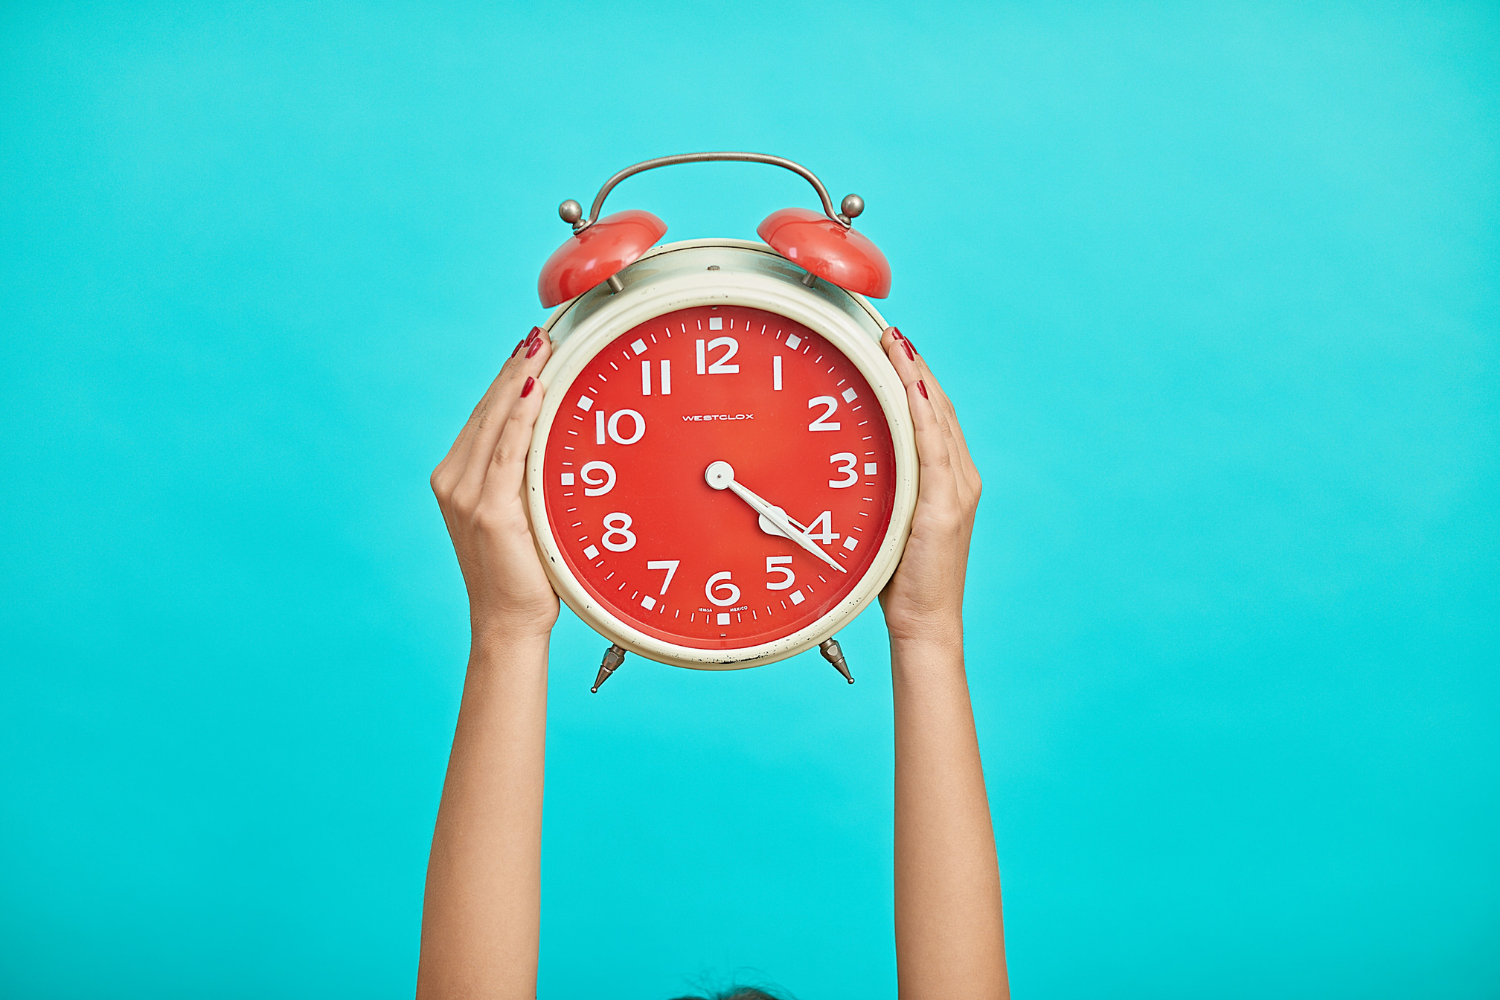 Blue background, two hands up in the air holding a red alarm clock; what the timing of your IBS symptoms says about your triggers